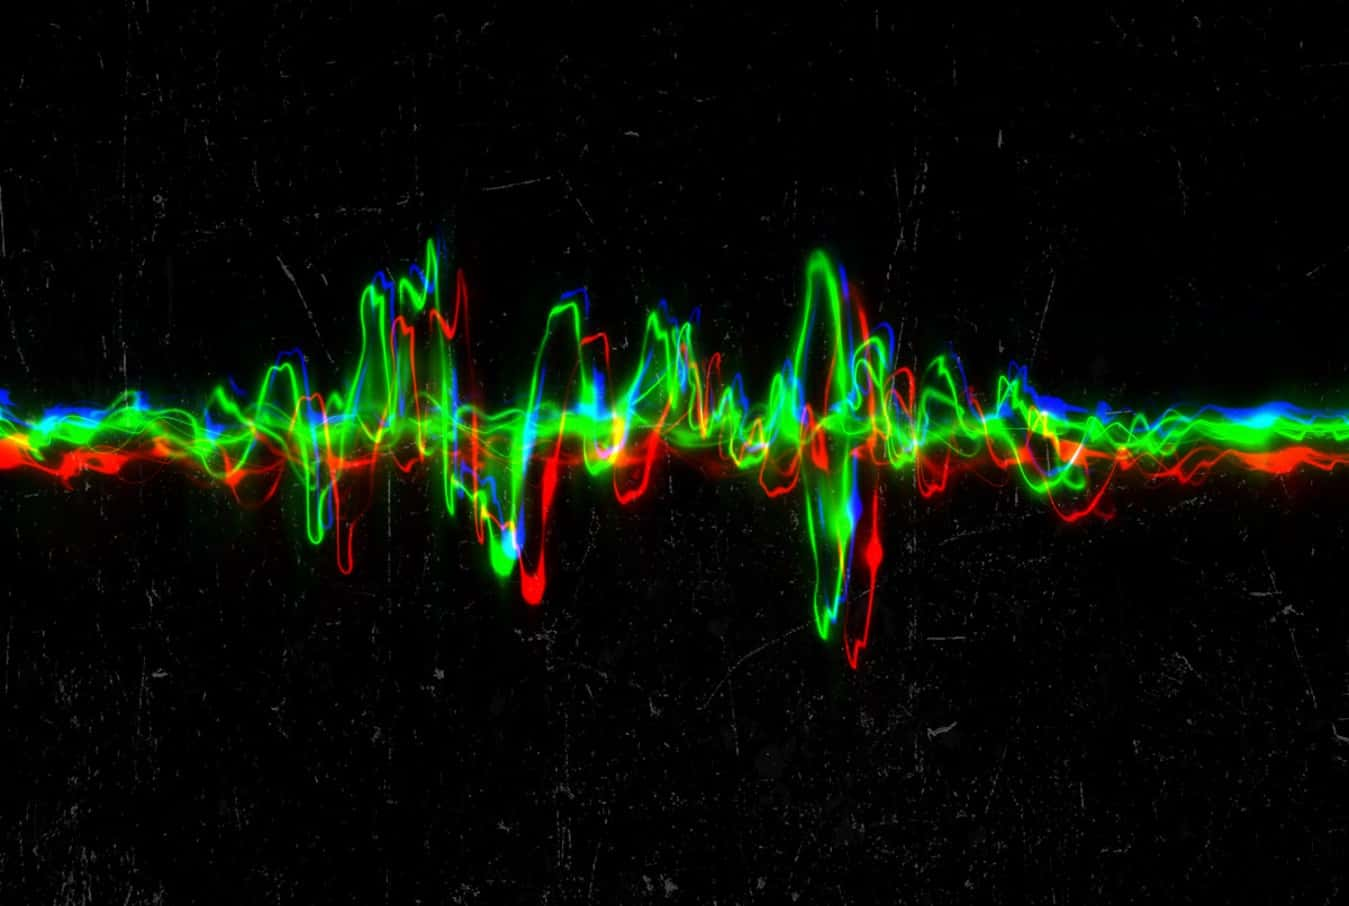 Hackers get into Google Assistant and Siri using ultrasonic waves